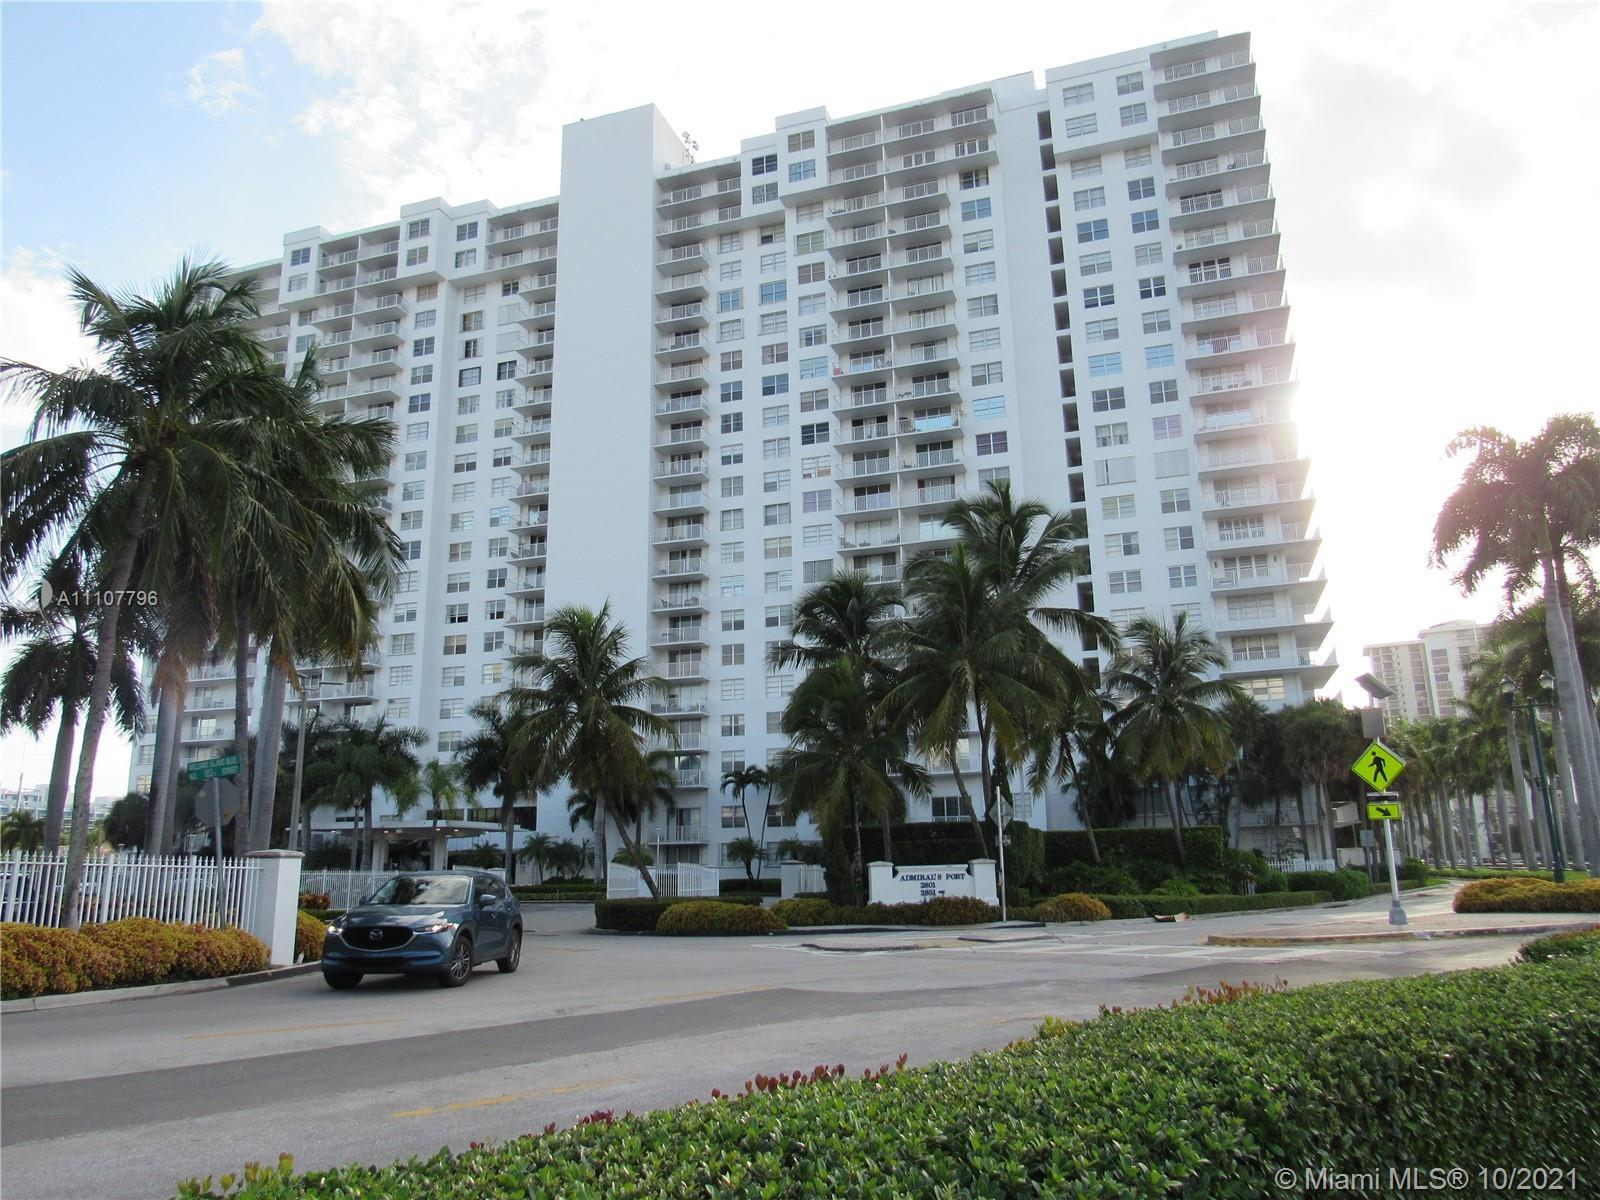 BEAUTIFUL AND BRIGHT 2BED+DEN/2BATH COMPLETELY RENOVATED UNIT LOCATED IN CENER OF AVENTURA. CERAMIC